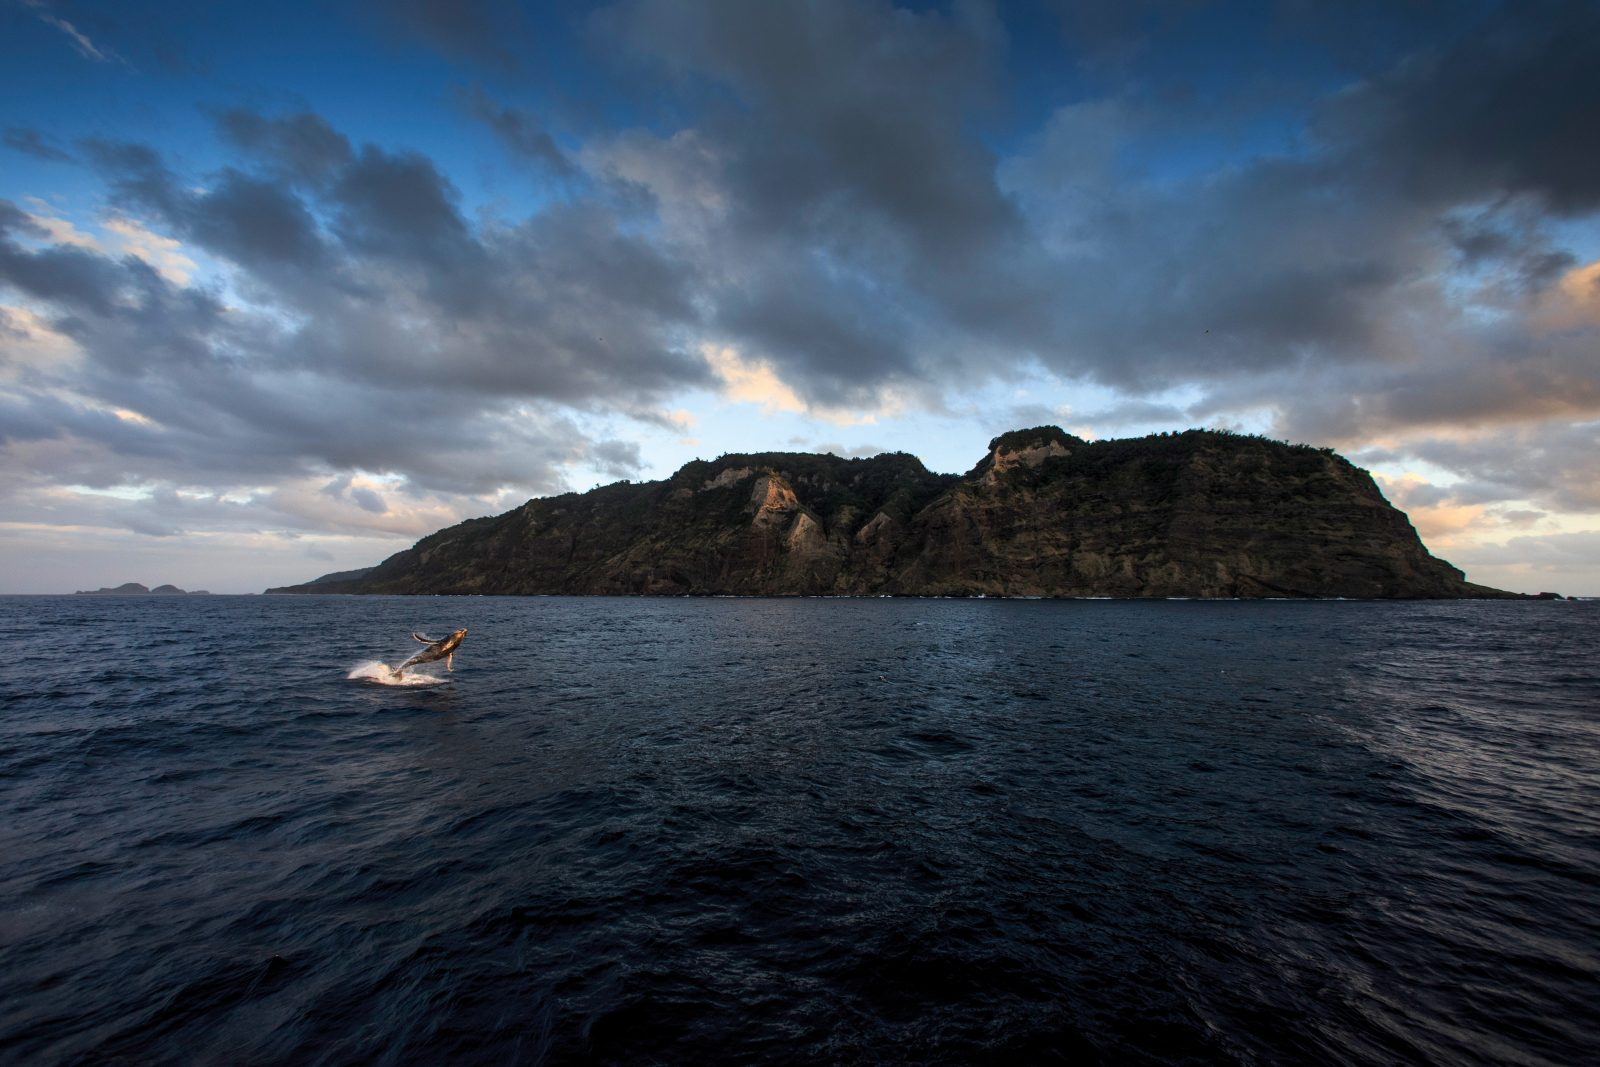 The springtime migration of whales through the Kermadec region is recorded in Polynesian oral histories as well as the diaries of European settlers on Raoul Island. The 2015 expedition was the first opportunity for a formal scientific study of these whales. As RV Braveheart departed the south-west coast of Raoul, the team was farewelled by the exuberant breaches of this humpback calf.